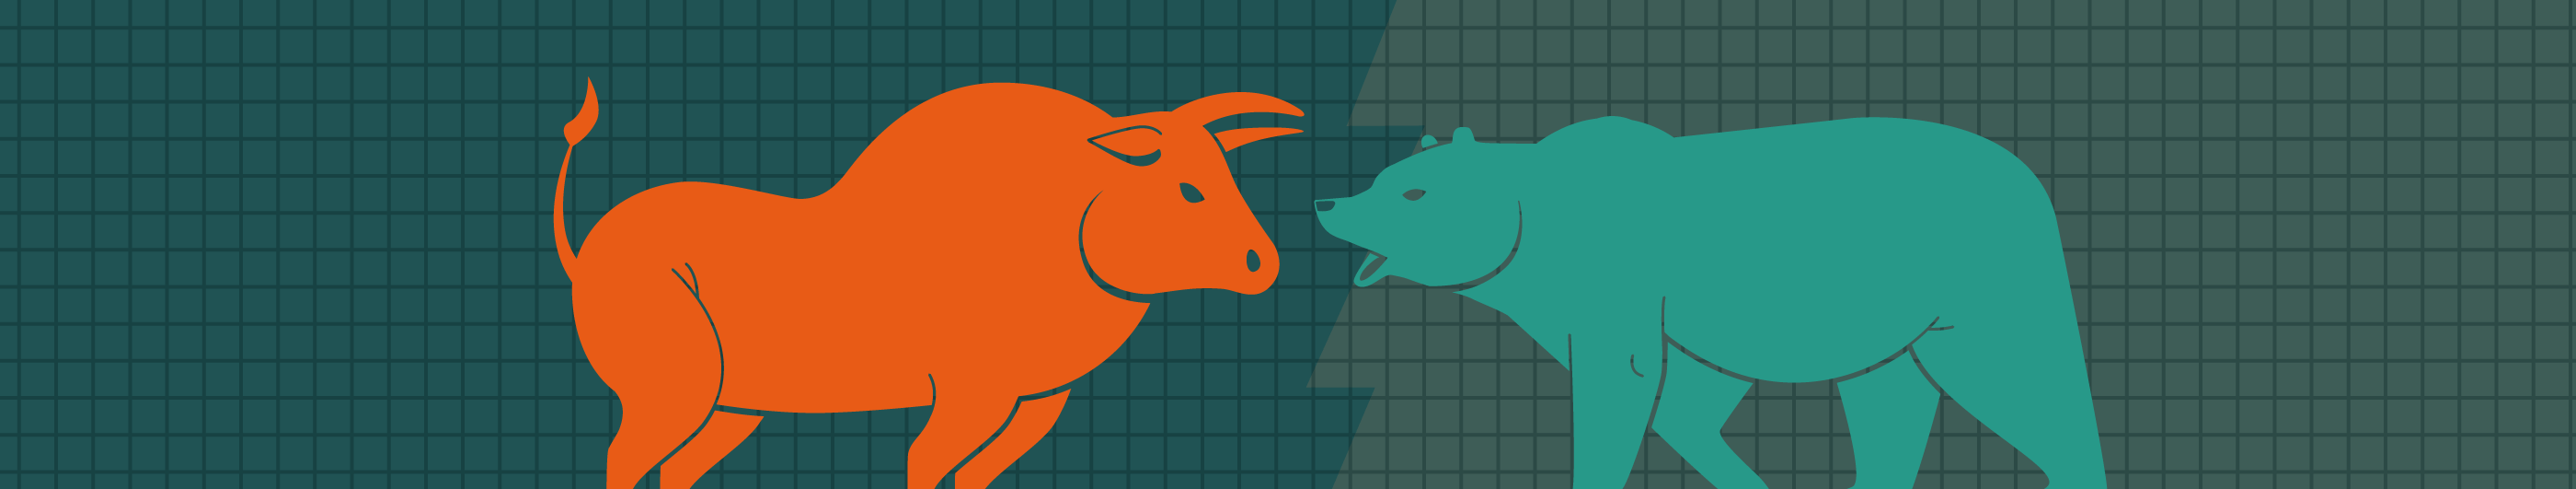 illustration of a bull and a bear